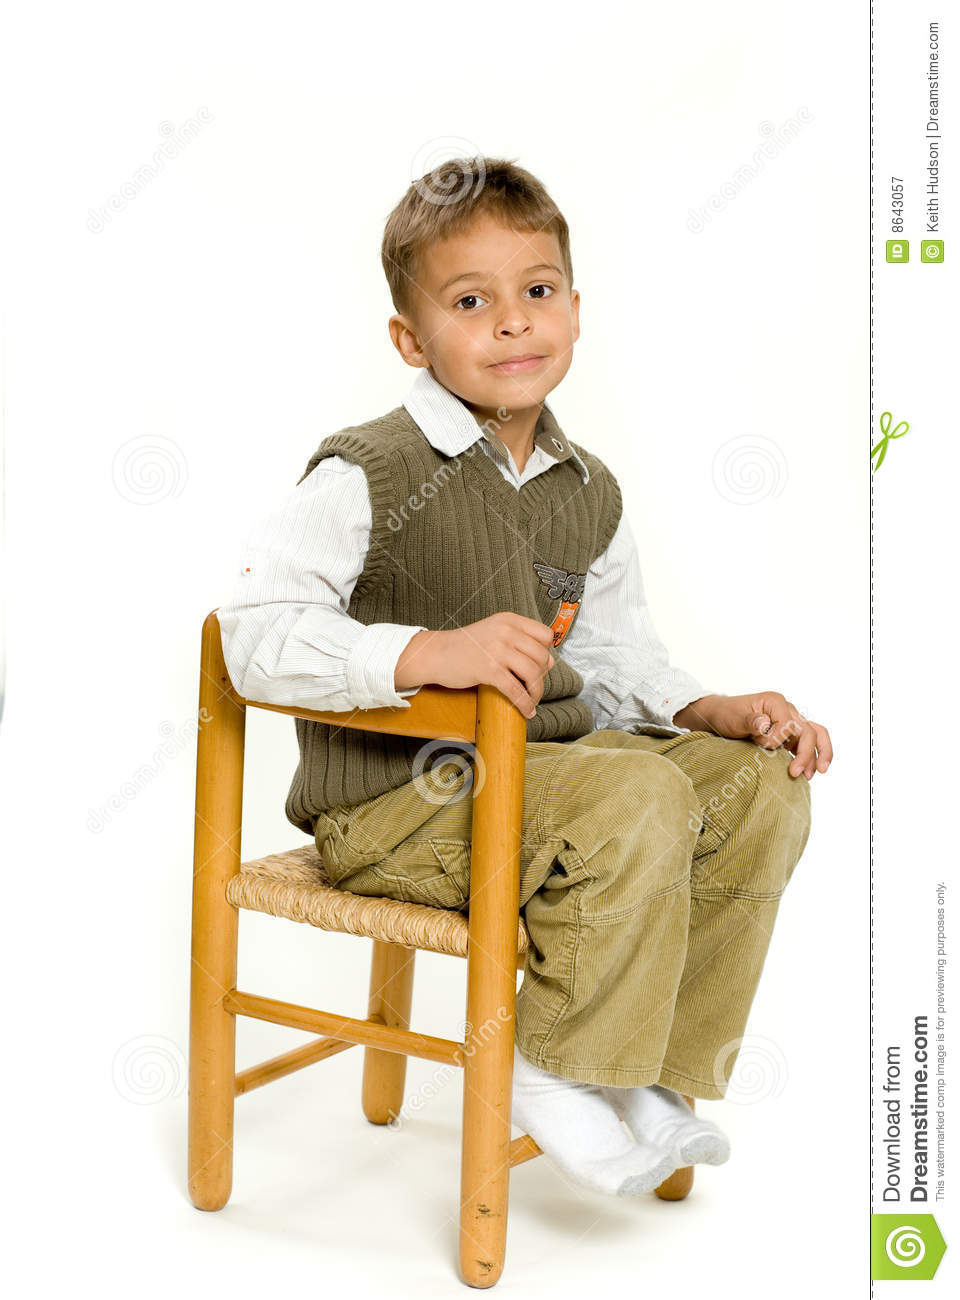 young boy sitting in chair stock image image of sitting 8643057. Black Bedroom Furniture Sets. Home Design Ideas